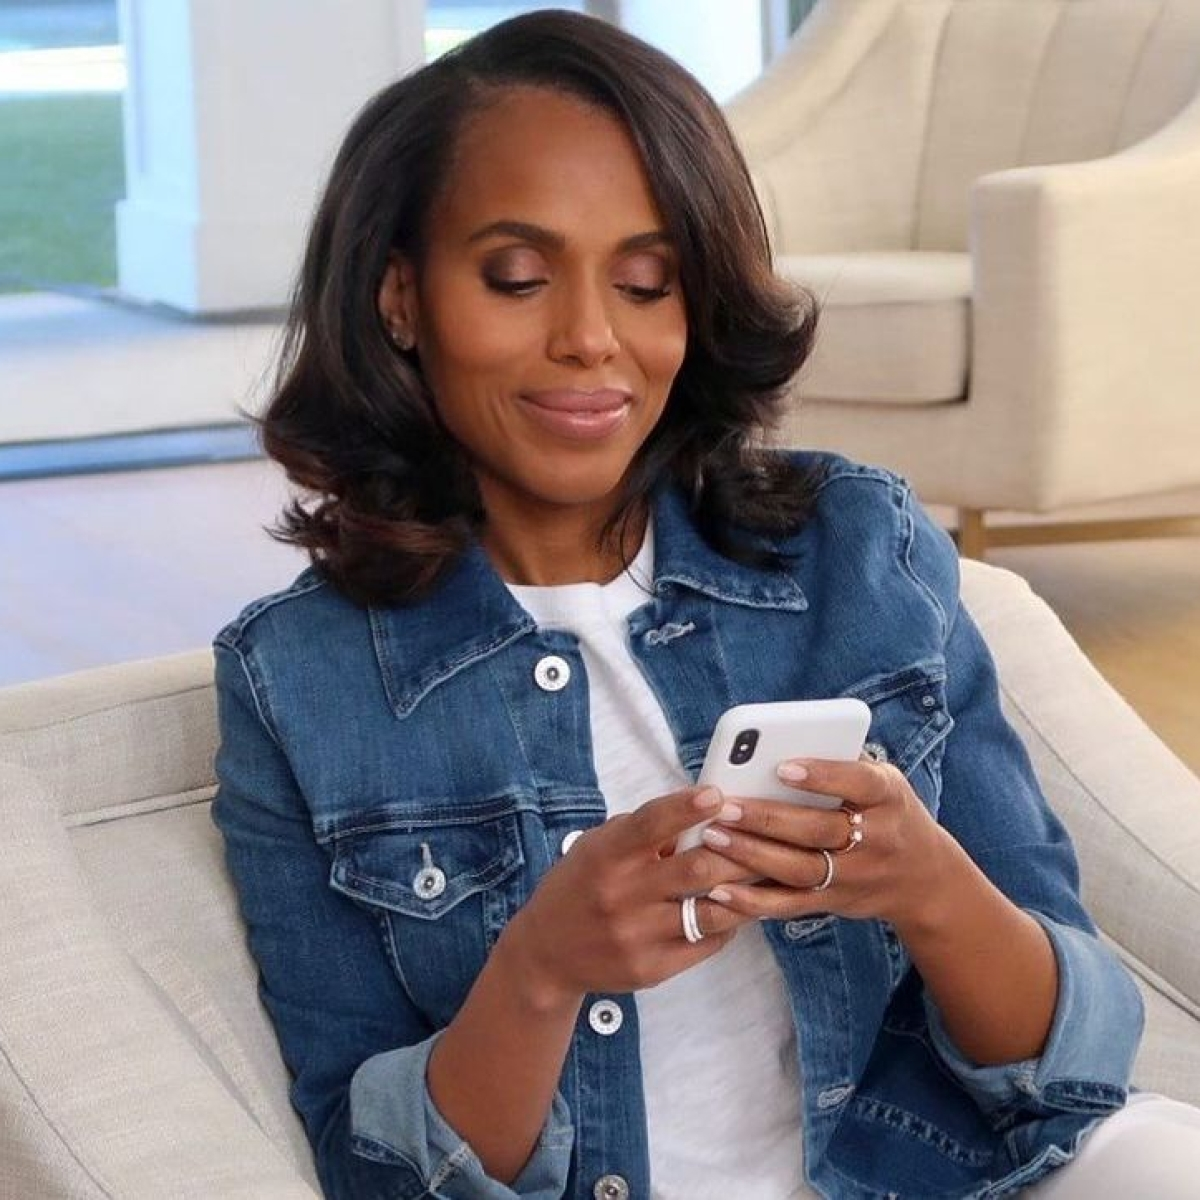 Amid backlash, 'Scandal' fame Kerry Washington deletes tweet comparing deaths of Prince Philip and DMX